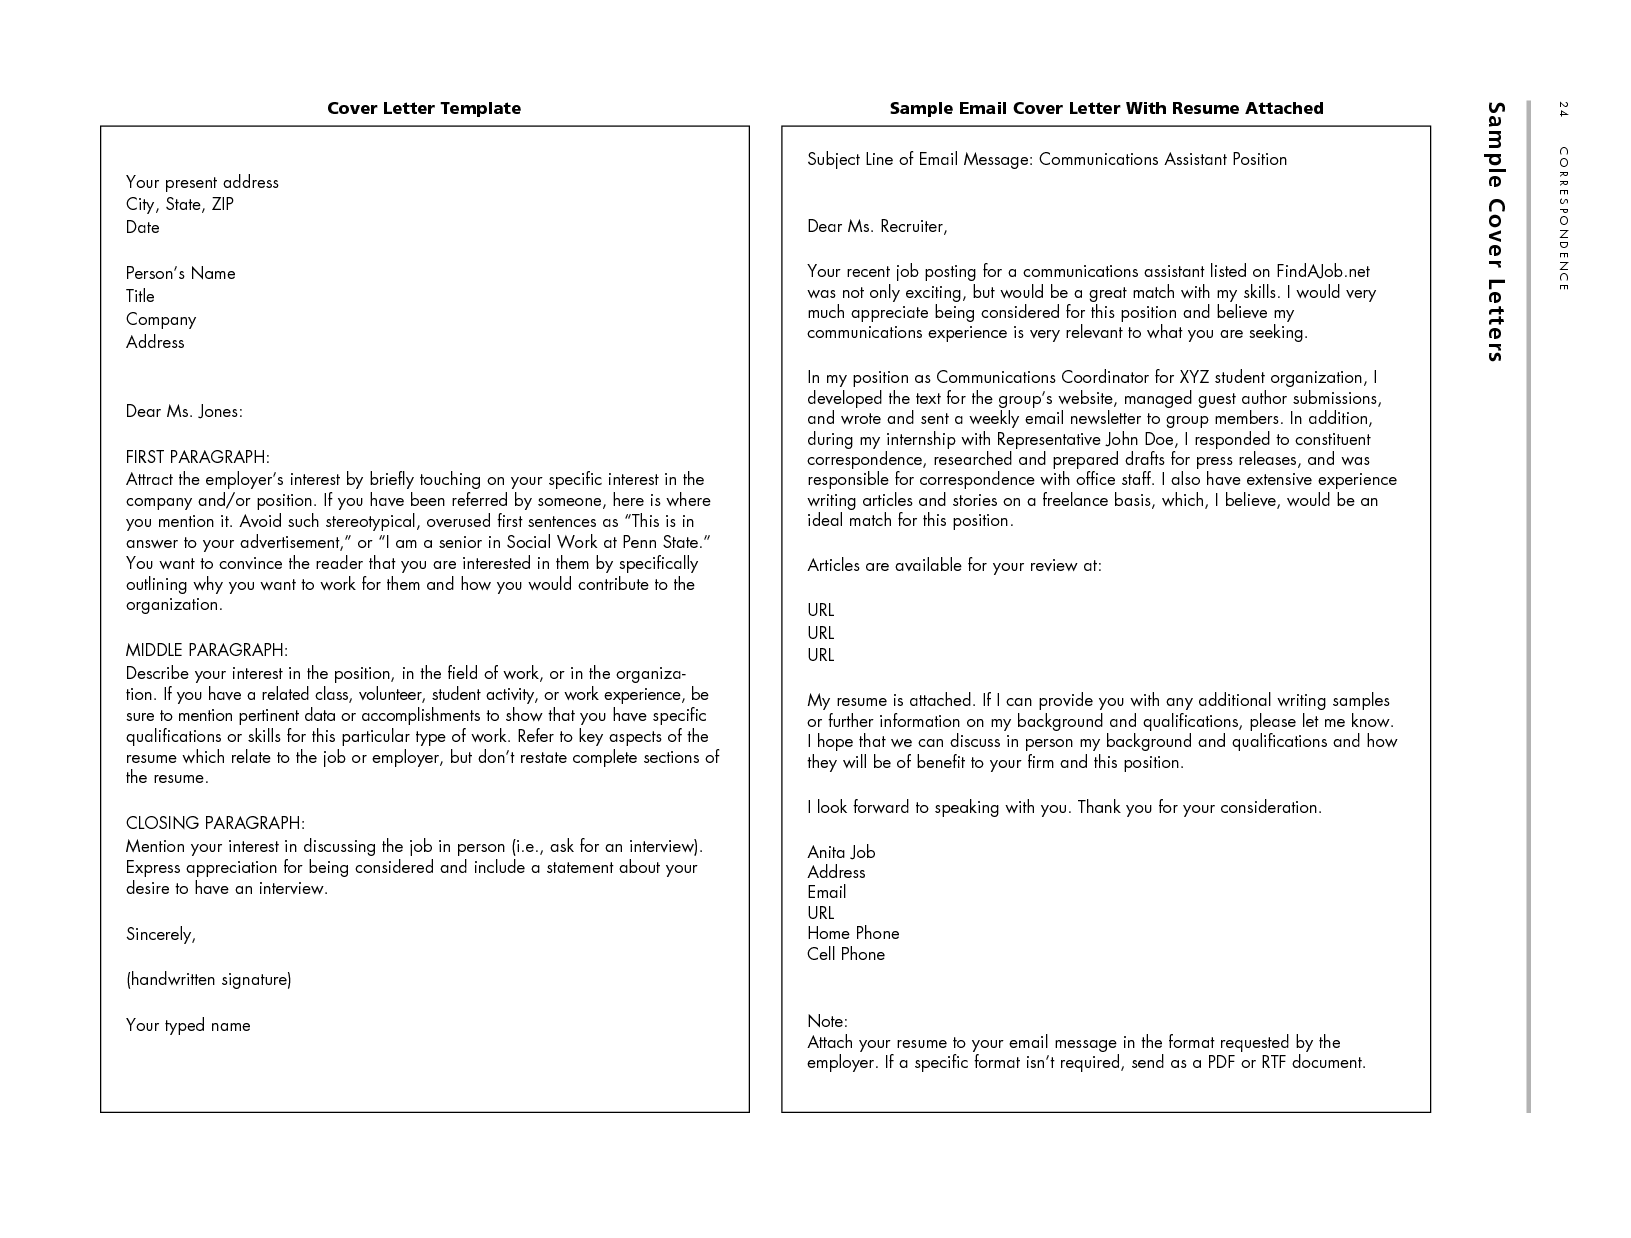 Emailing Resume And Cover Letter Message Sample - Resume